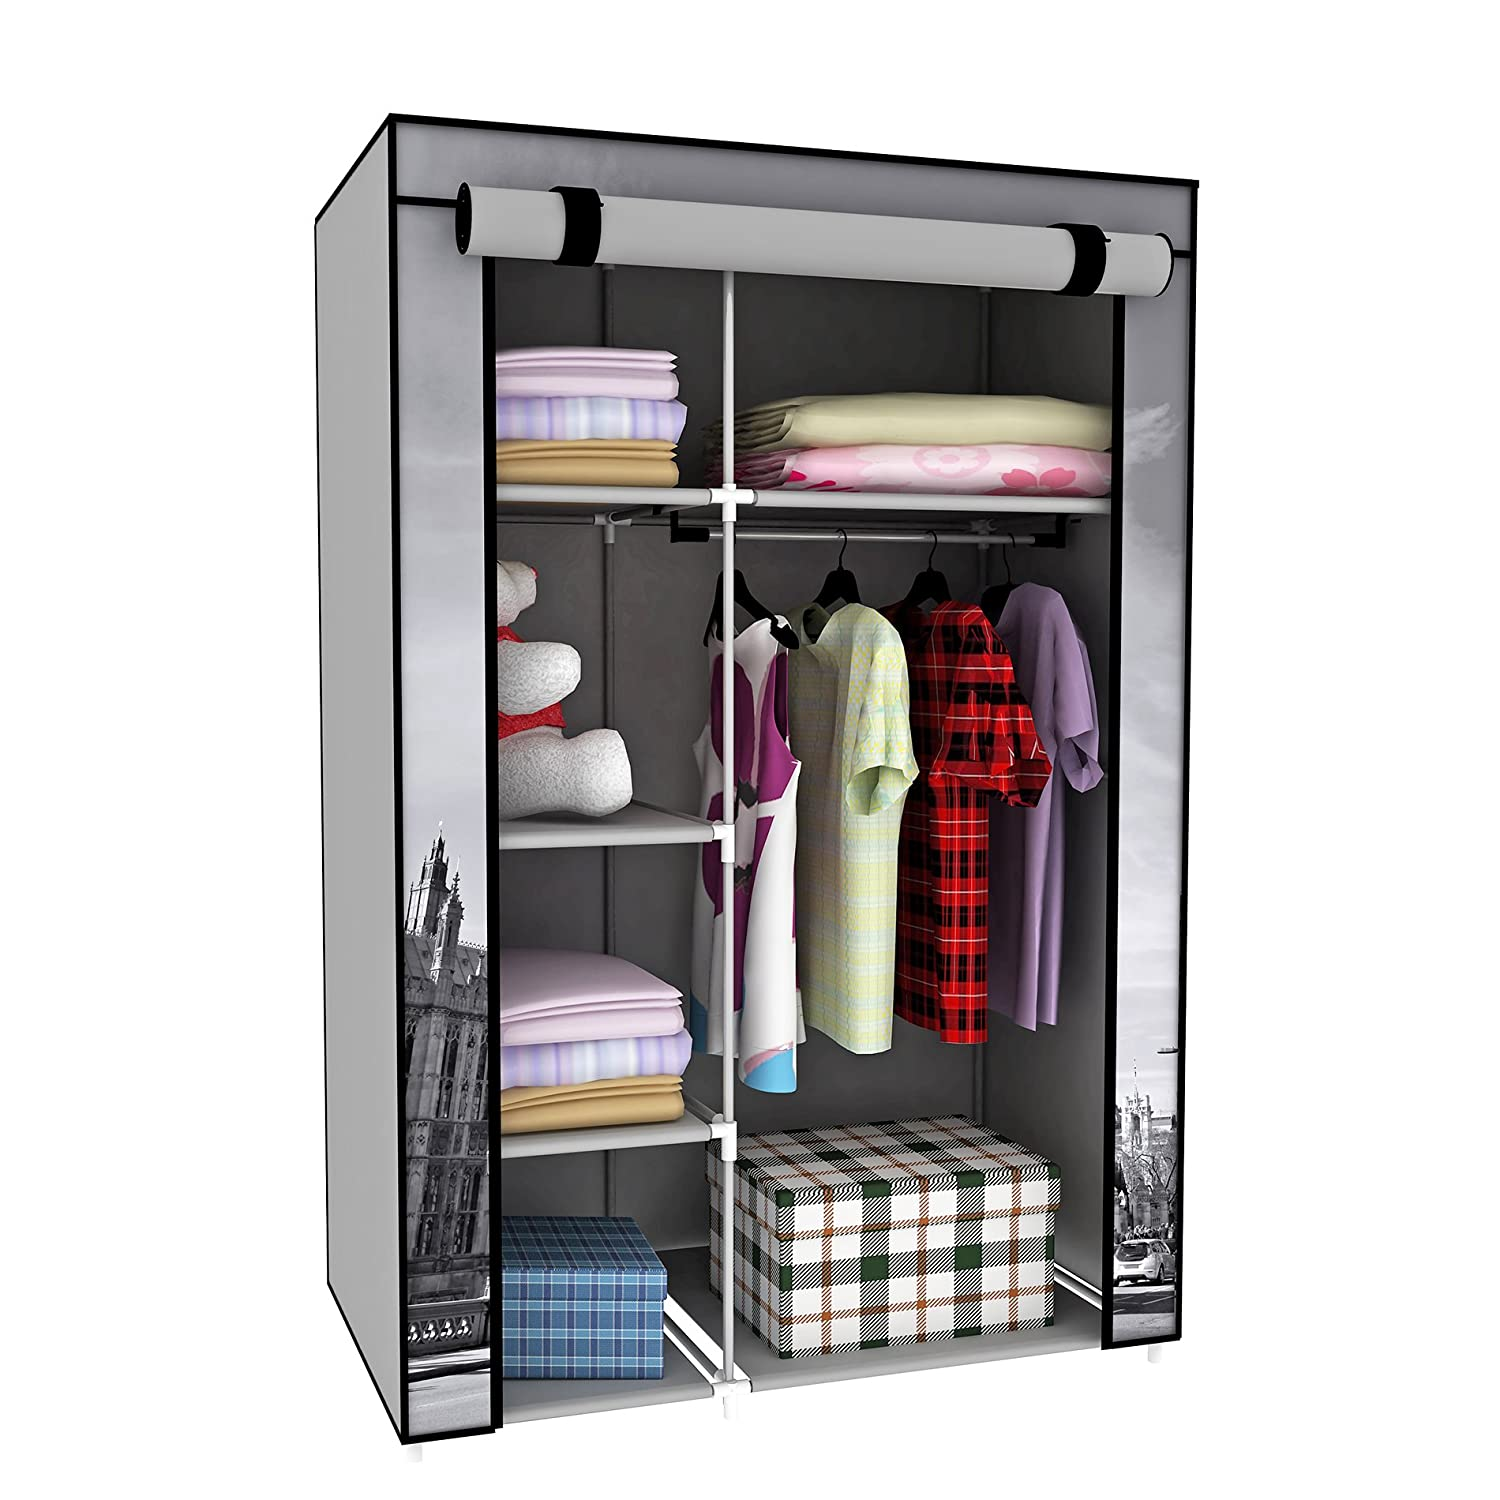 Amazon Switch Innovation Storage Closet Portable Temporary Clothing Wardrobe Free Standing Clothes Rack Non Woven Fabric Dresser Dorm Room Cupboard